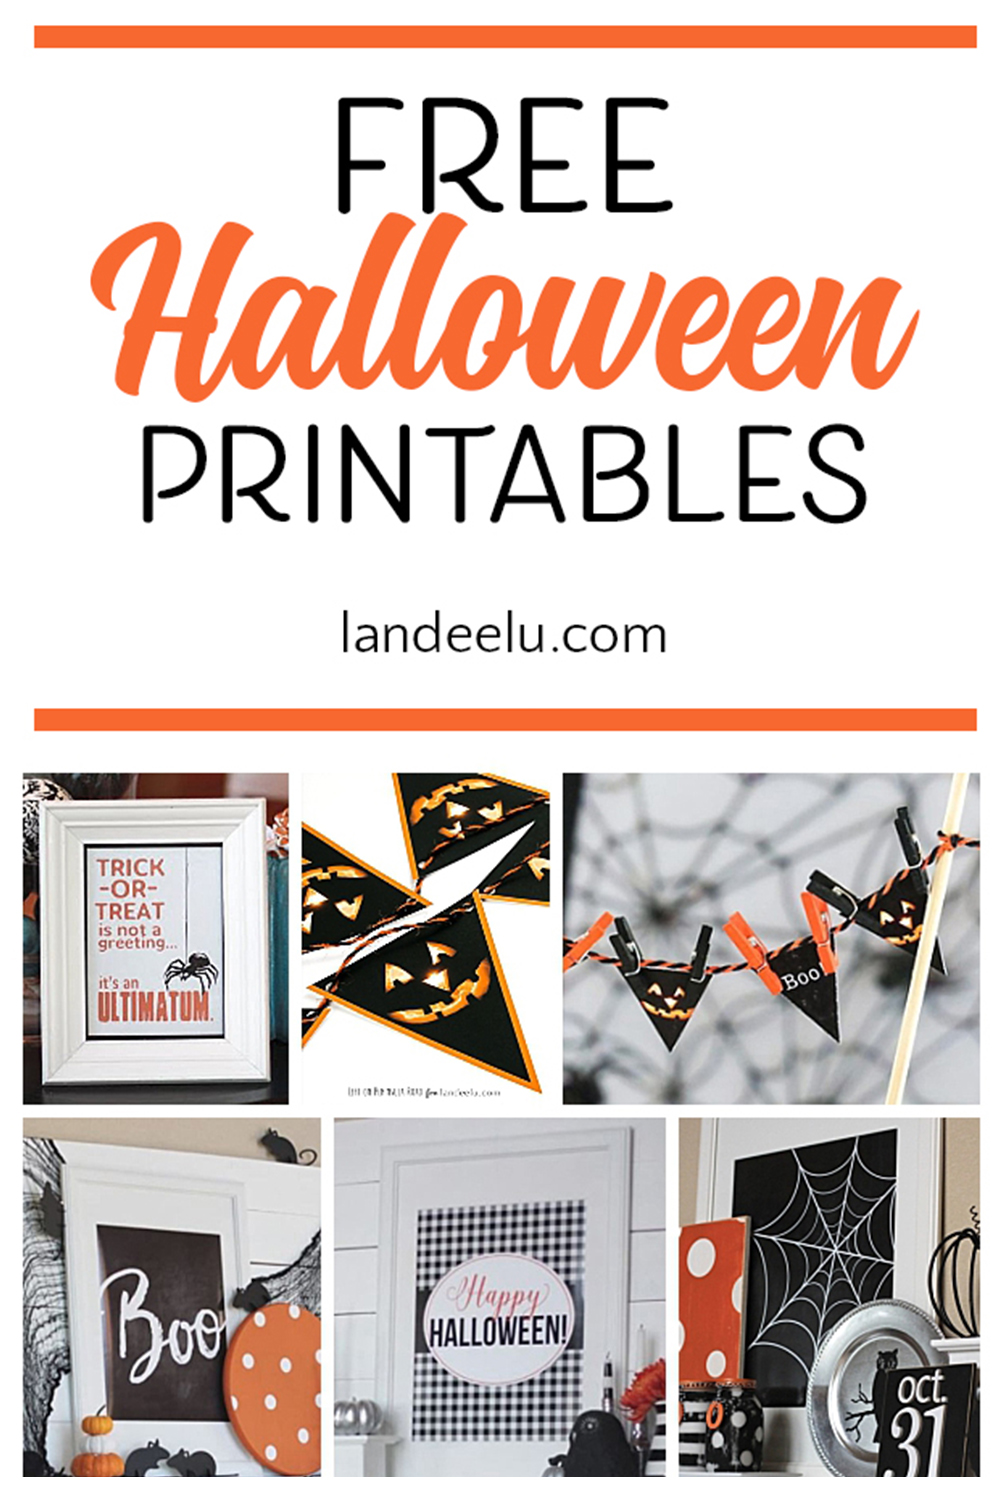 Tons of free Halloween printables to spookify your Halloween decor! #halloween #halloweendecor #halloweenideas #freehalloweenprintables